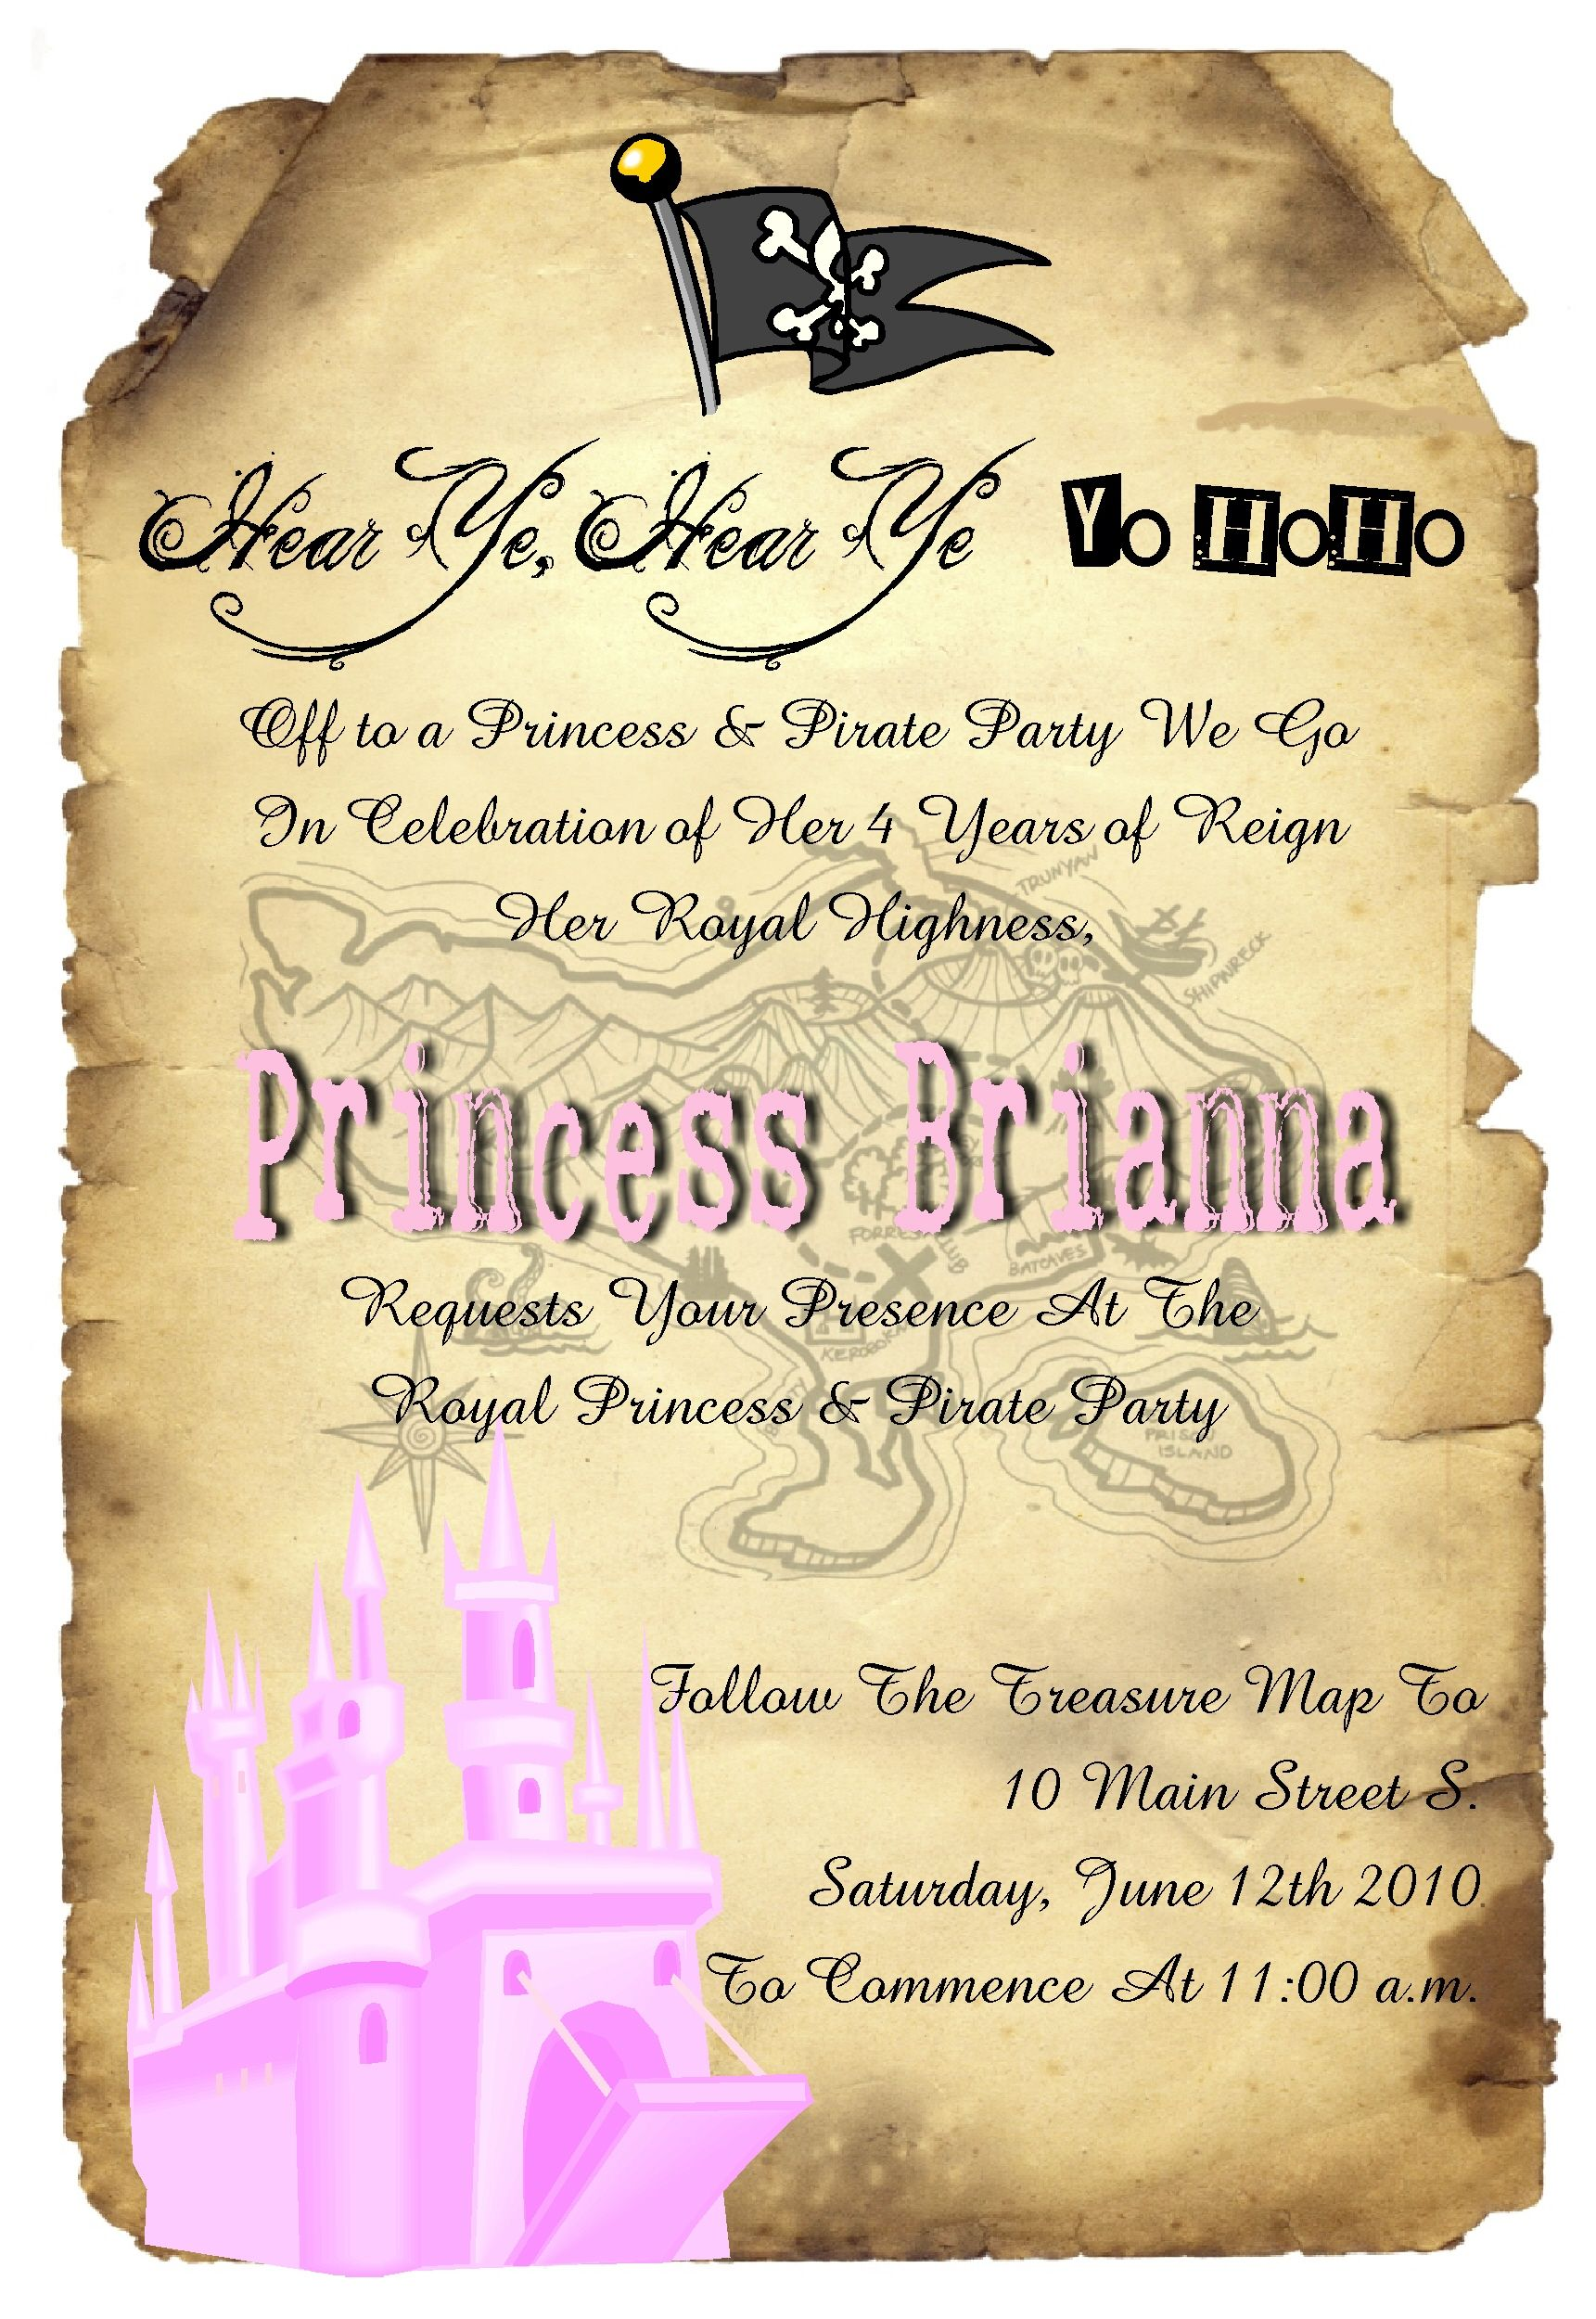 Princess pirate scroll invitations unique invitations pinterest princess pirate scroll invitations pirate birthday partiesbaby filmwisefo Choice Image